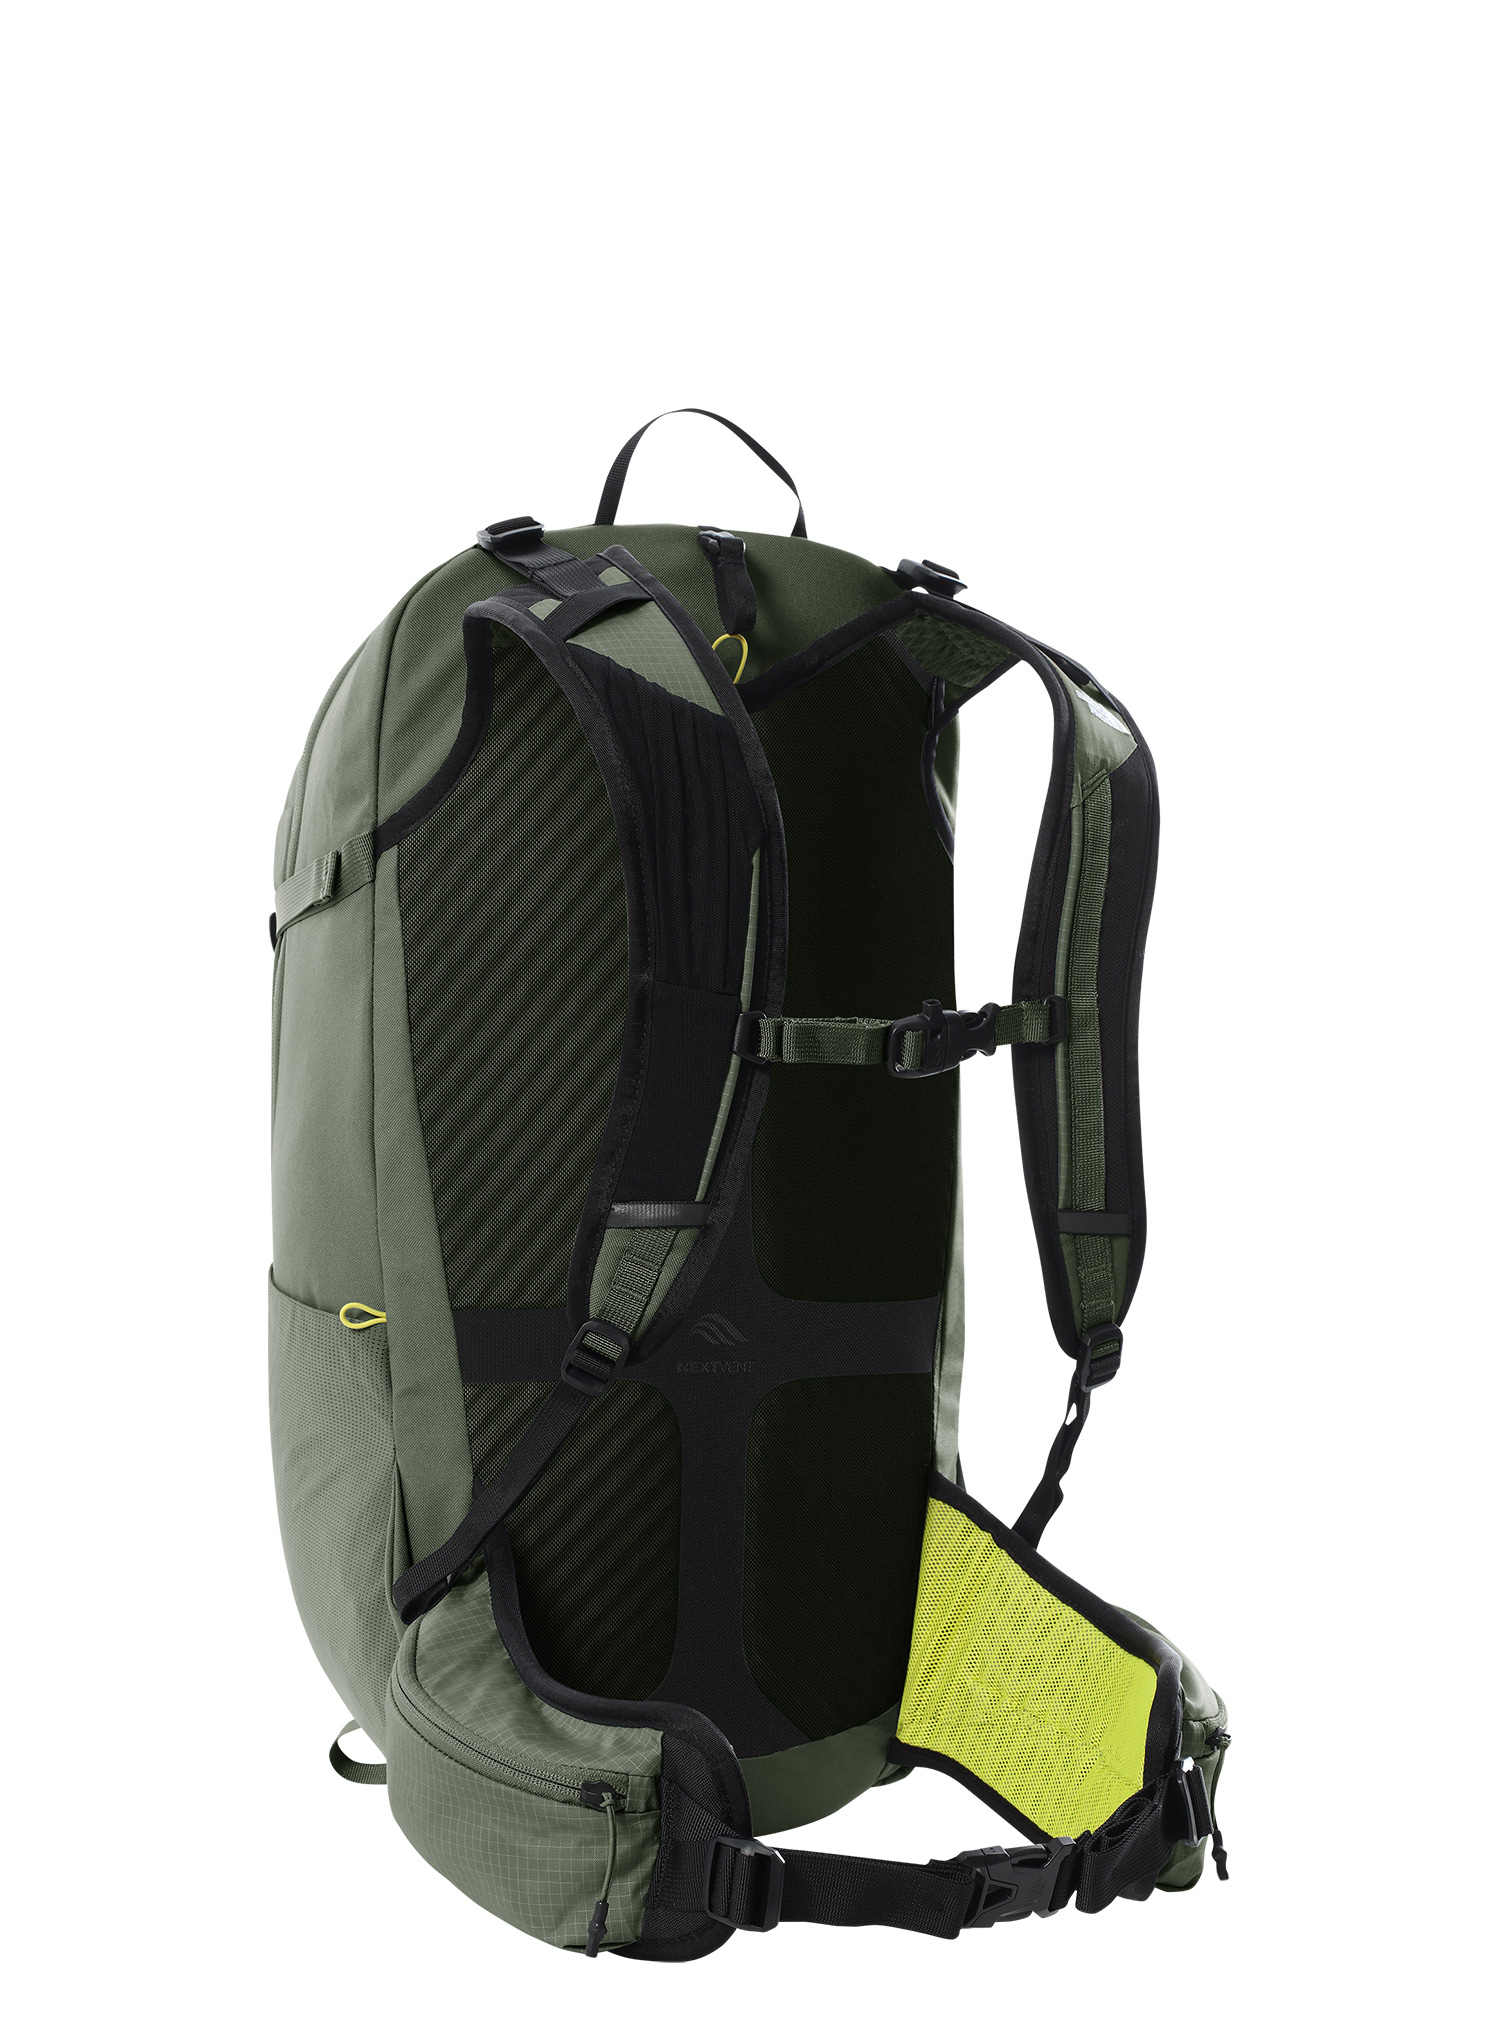 Plecak turystyczny The North Face Alamere 36 - green/spring green - zdjęcie nr. 2